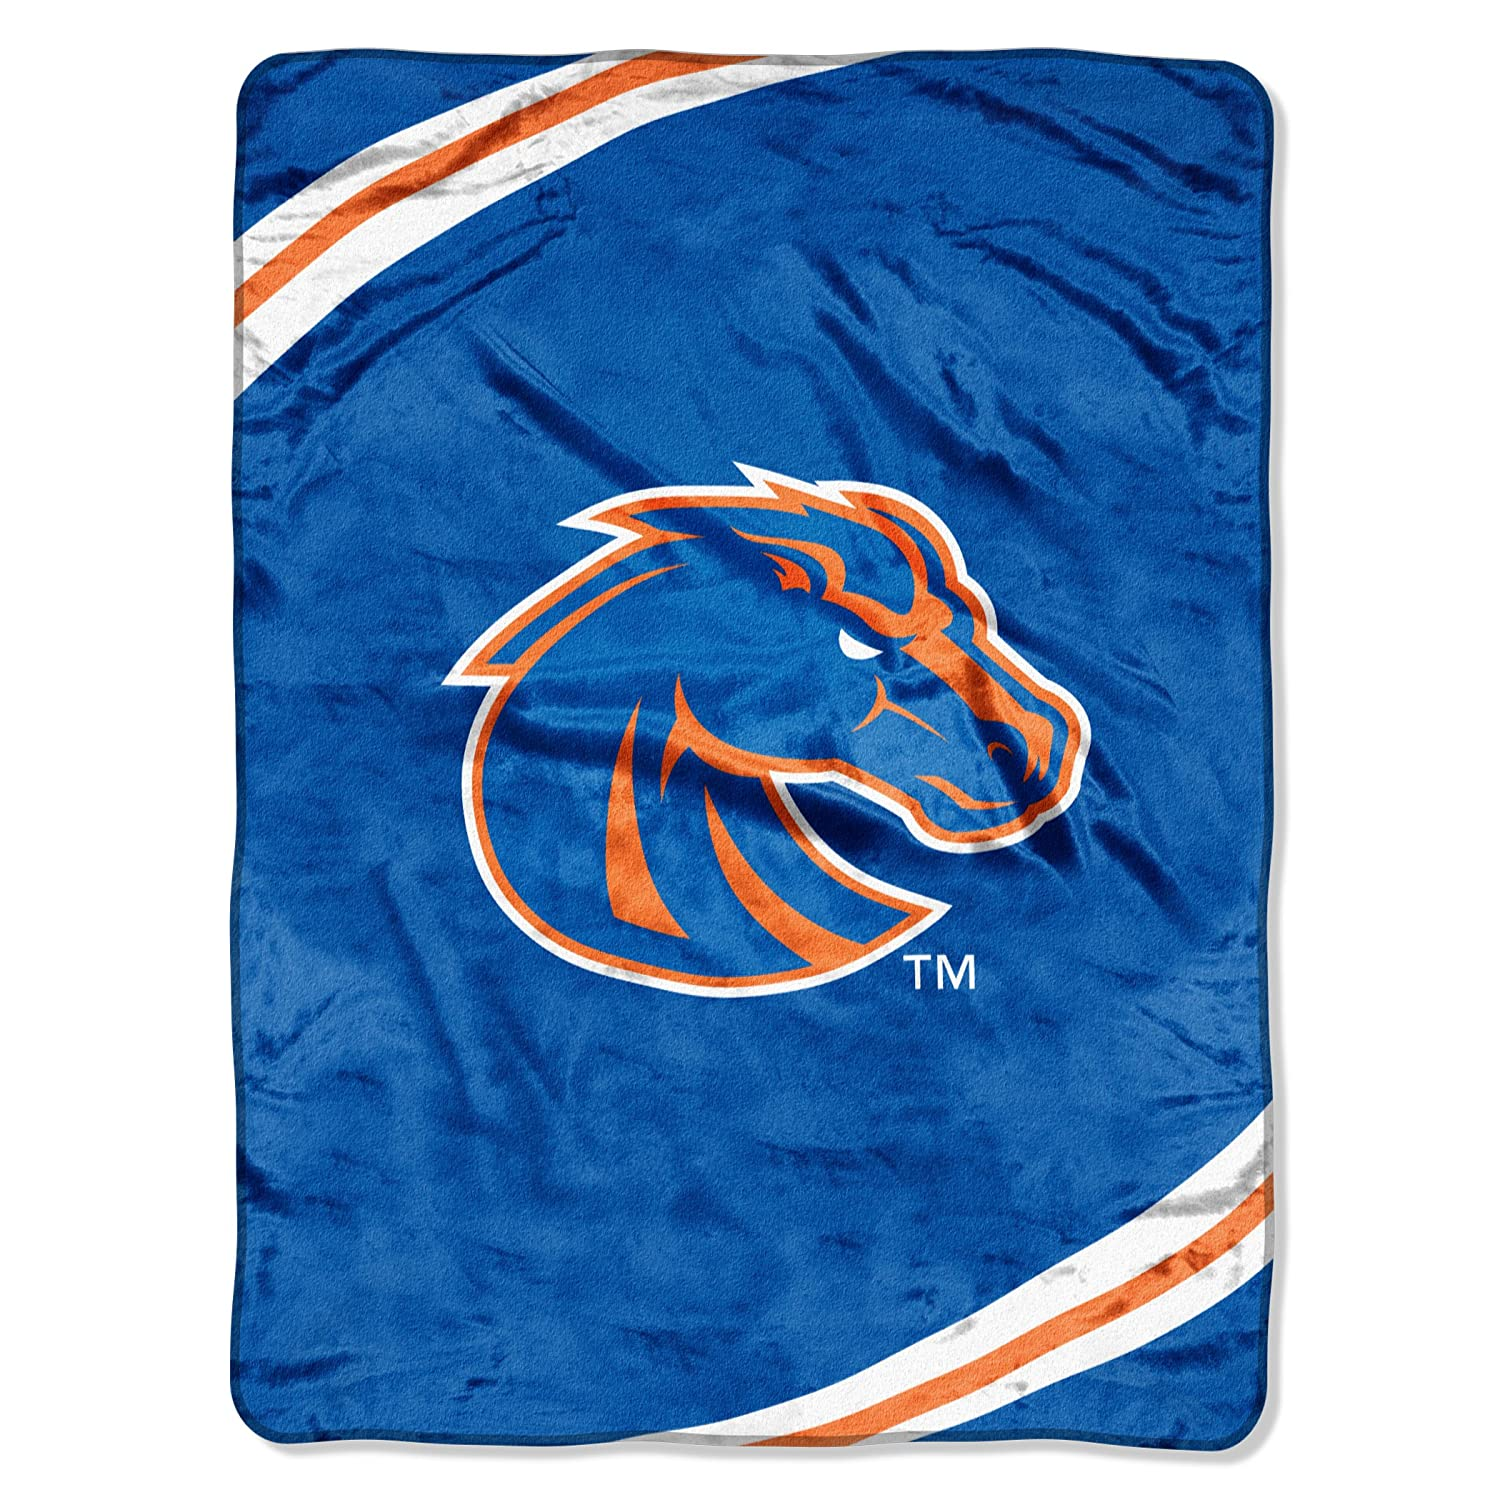 The Northwest Company Officially Licensed NCAA Throw Blanket